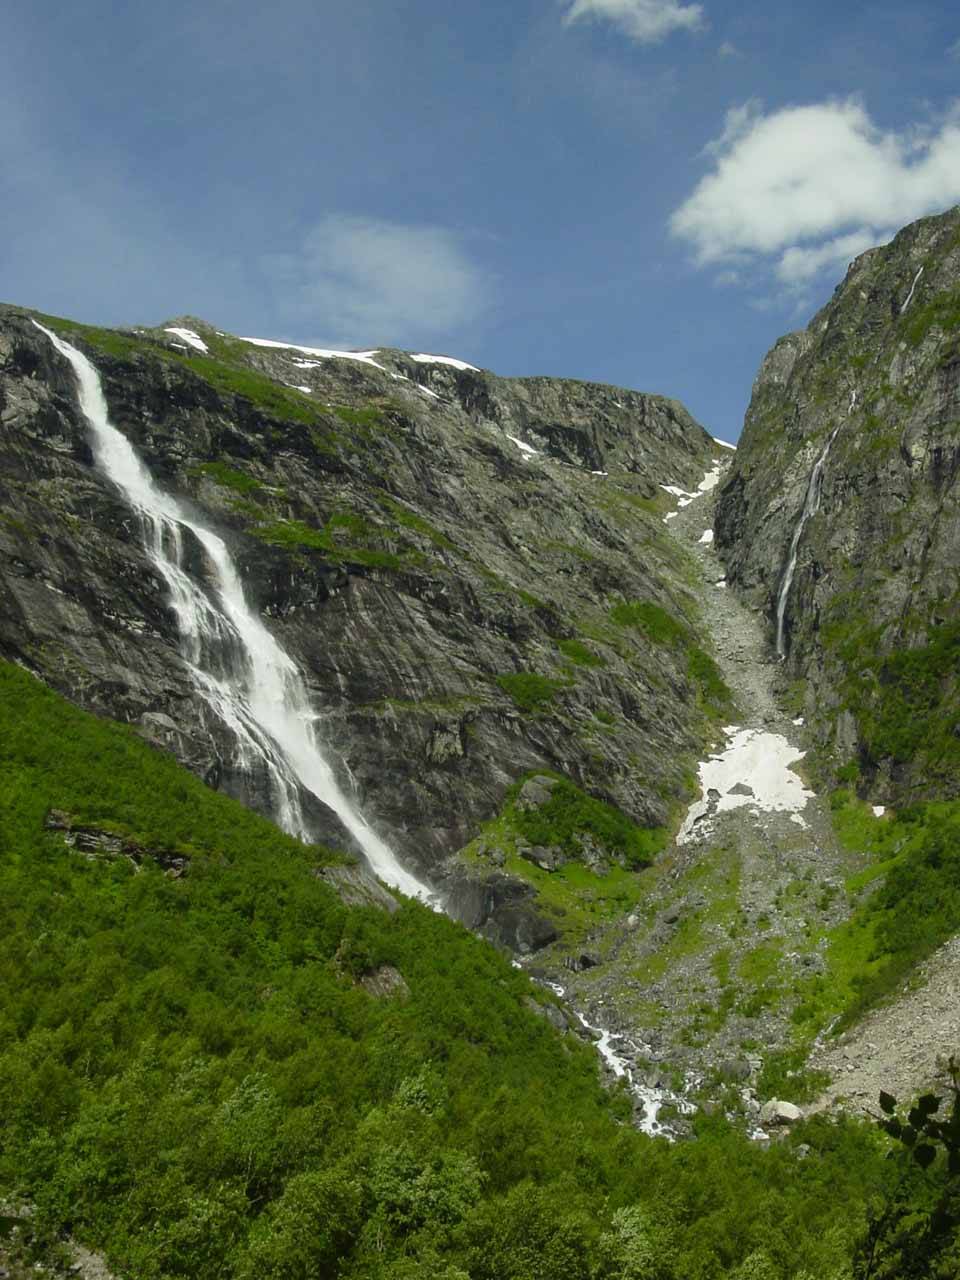 A cleaner look at the Ytste Mardalsfossen